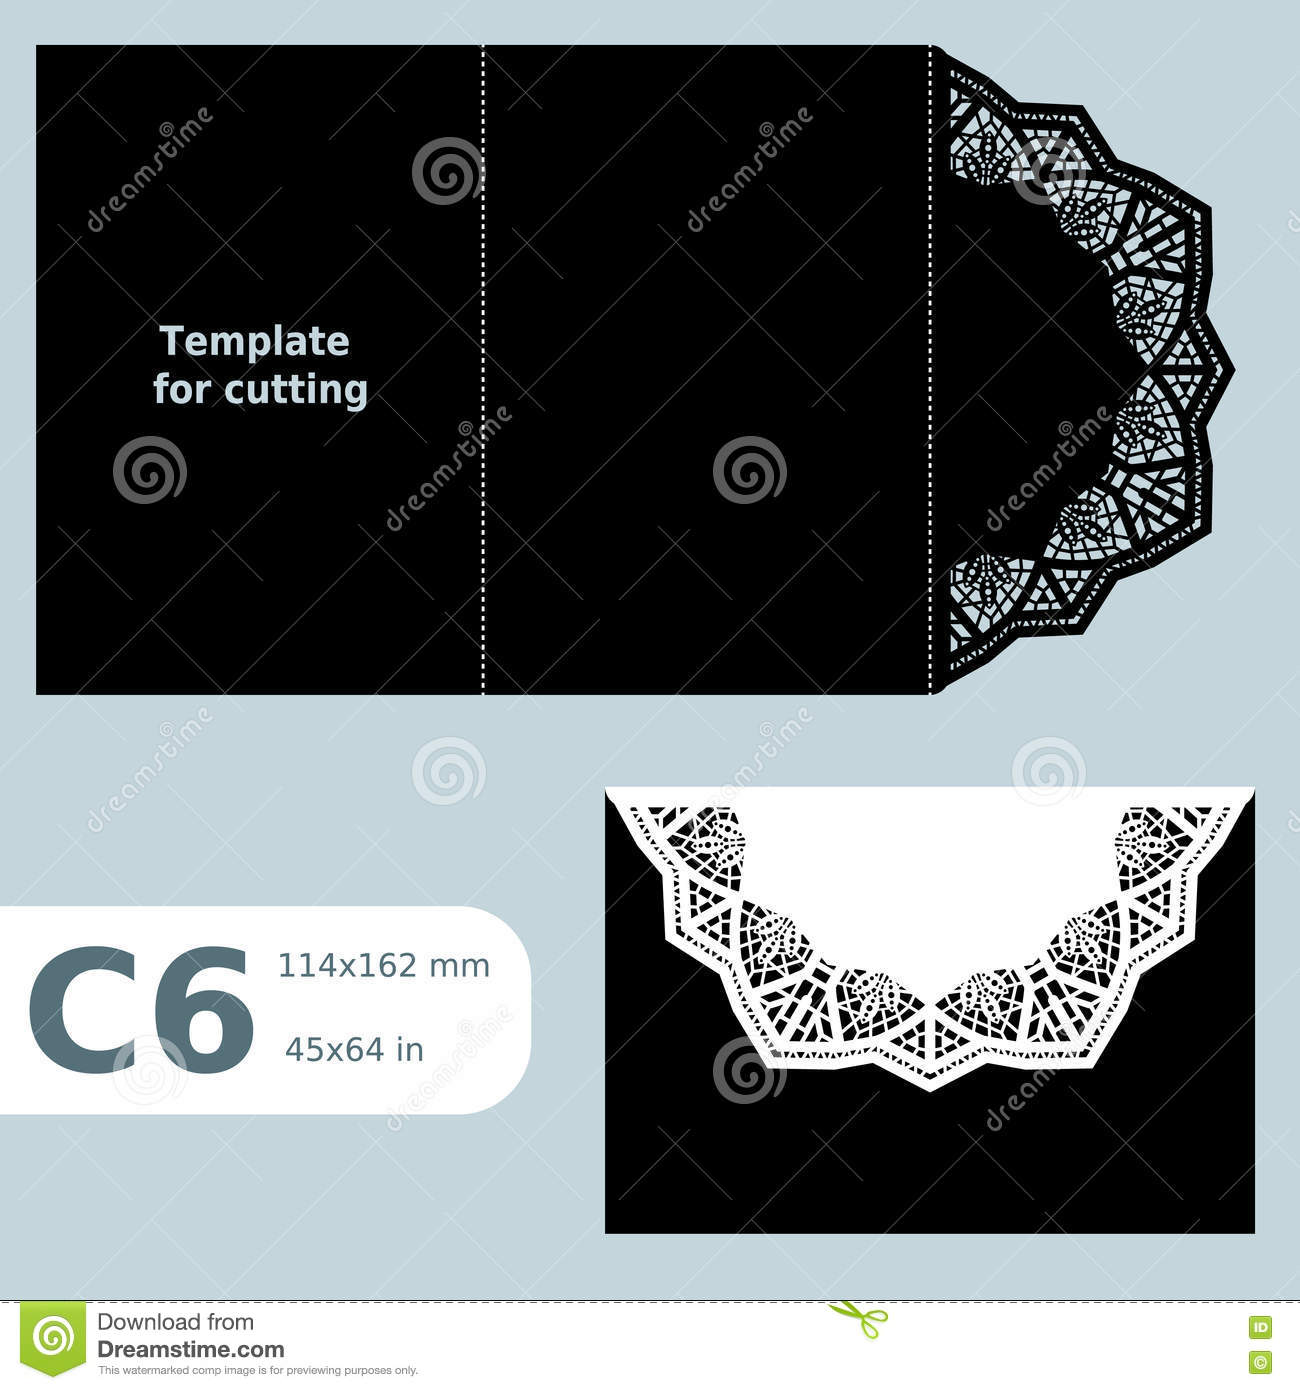 Lovely 10 Envelope Template Indesign Tiny 1st Birthday Invitation Template Clean 2 Page Resume Header 2013 Resume Writing Trends Youthful 2014 Planner Template Fresh2014 Sample Resume Templates C6 Paper Openwork Greeting Card, Template For Cutting, Lace ..